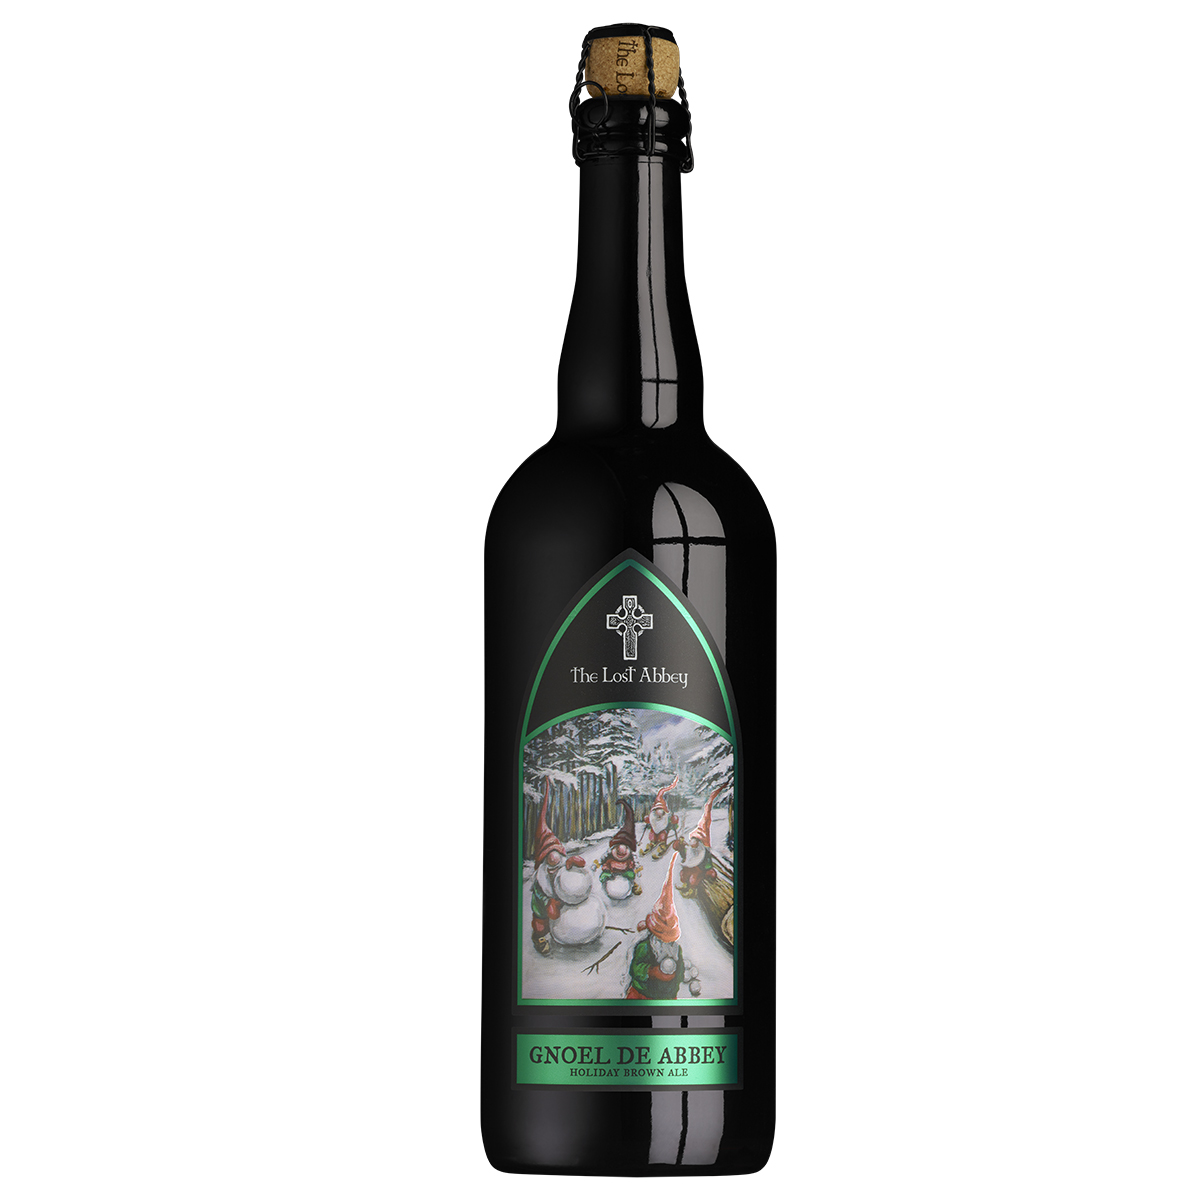 Gnoel de Abbey Ale - 750ml THUMBNAIL